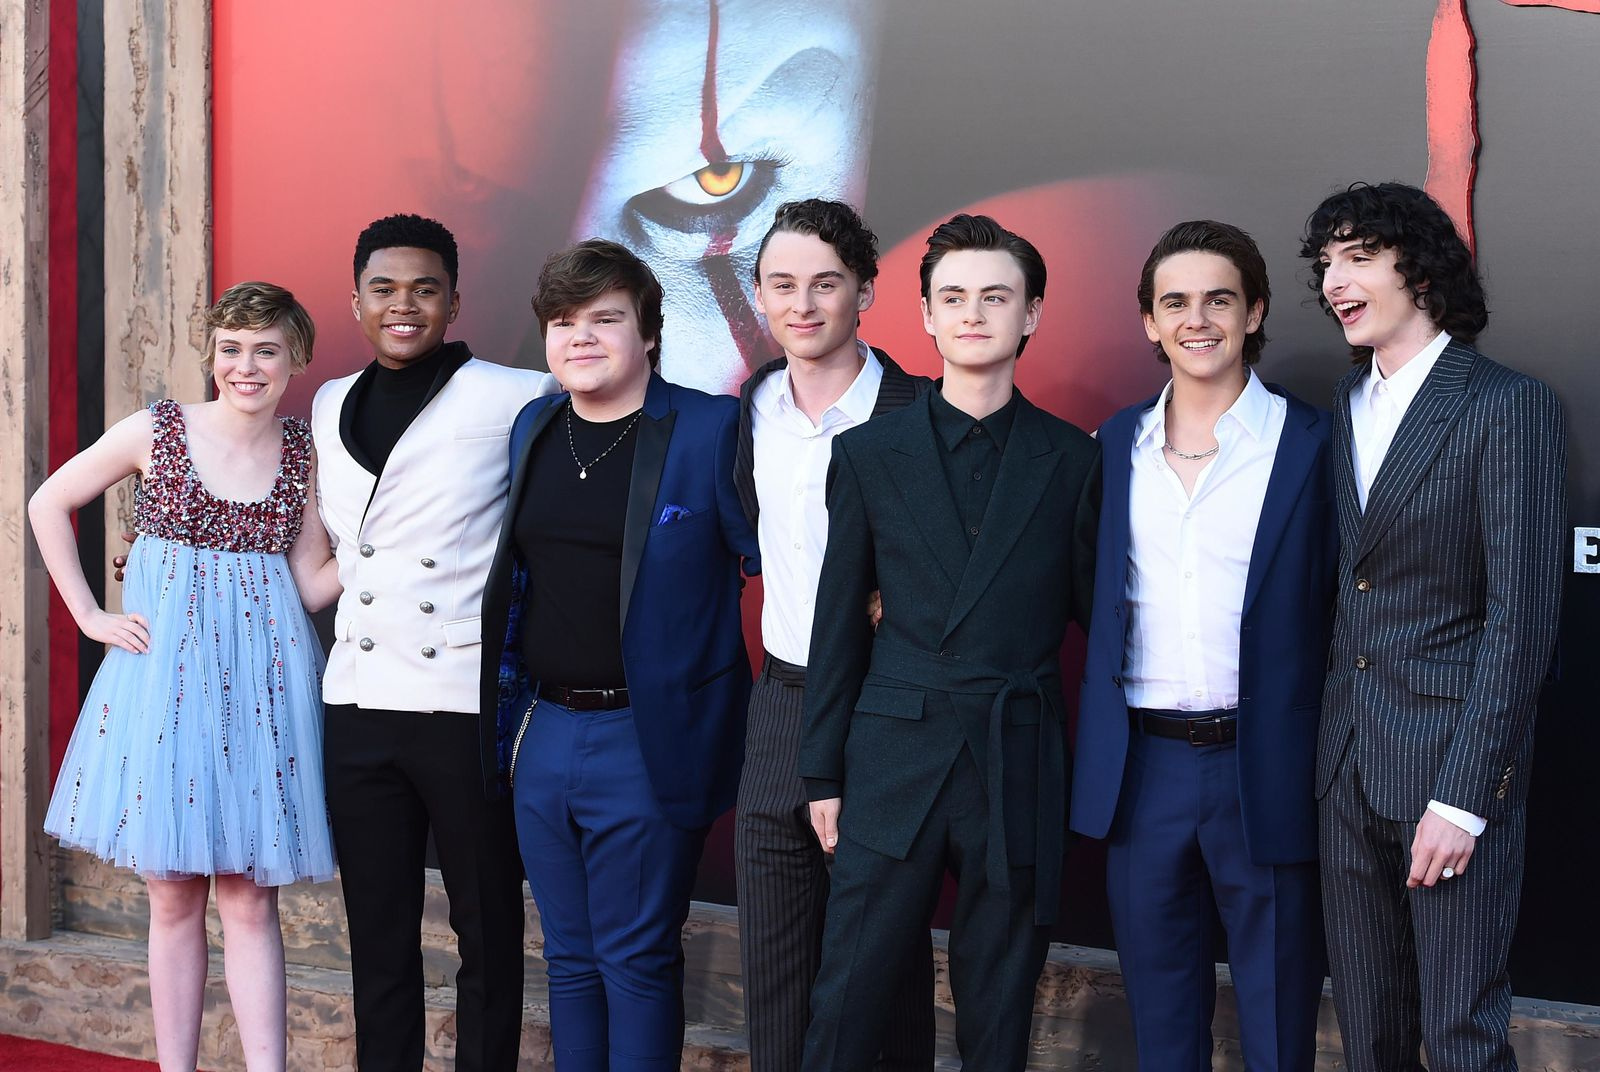 "FILE - In this Monday, Aug. 26, 2019 file photo, from left, cast members Sophia Lillis, Chosen Jacobs, Jeremy Ray Taylor, Wyatt Oleff, Jaeden Martell, Jack Dylan Grazer and Finn Wolfhard arrive at the Los Angeles premiere of ""It: Chapter 2,"" at the Regency Village Theatre. The movie opens Thursday, Sept. 5. (Photo by Jordan Strauss/Invision/AP, File)"